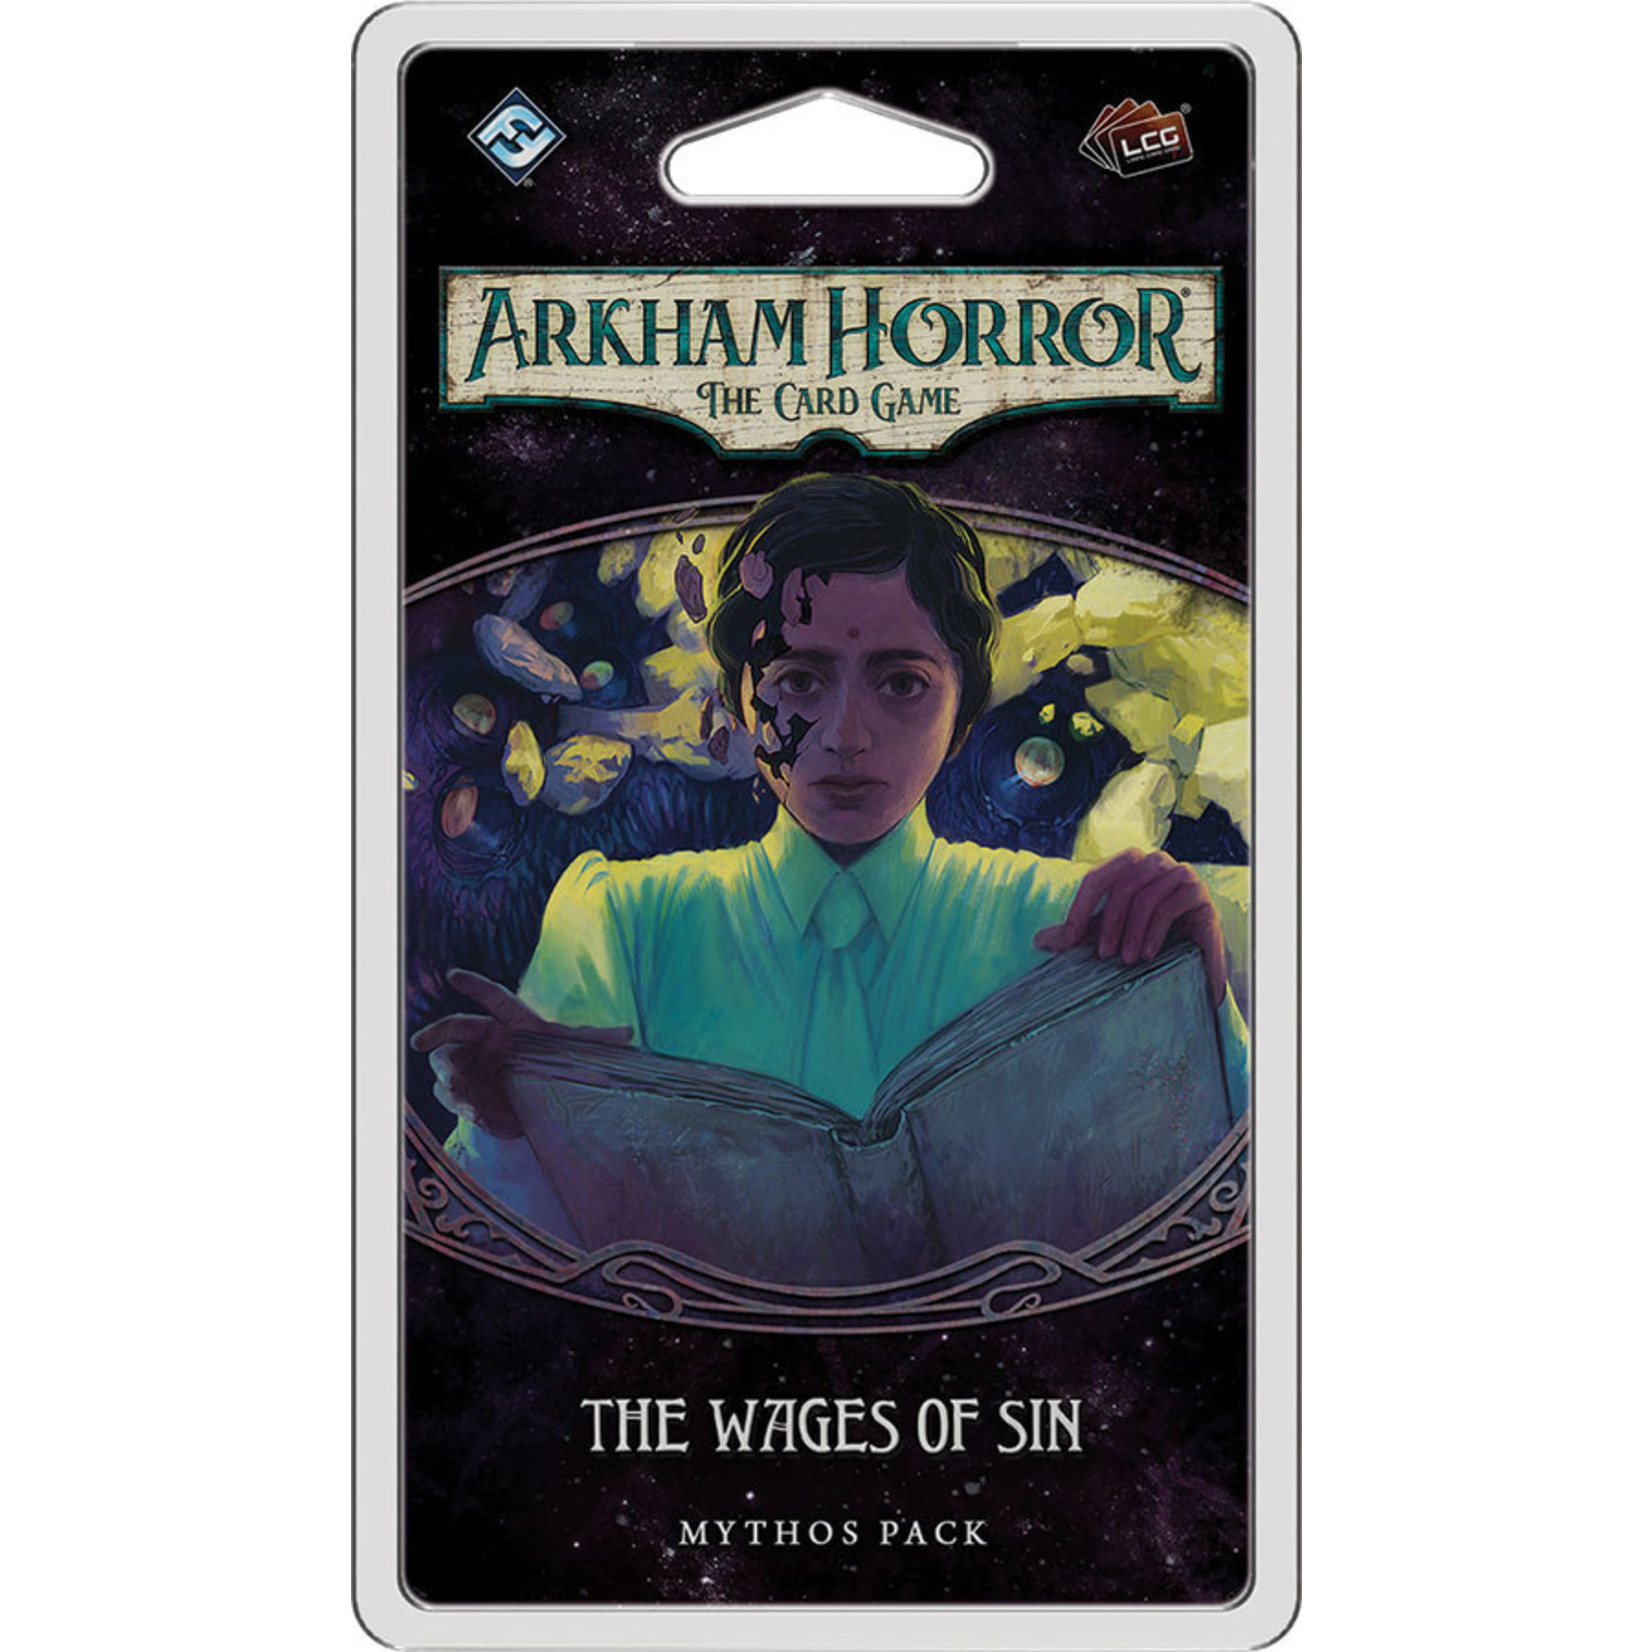 Fantasy Flight Games AH LCG The Wages of Sin Mythos Pack